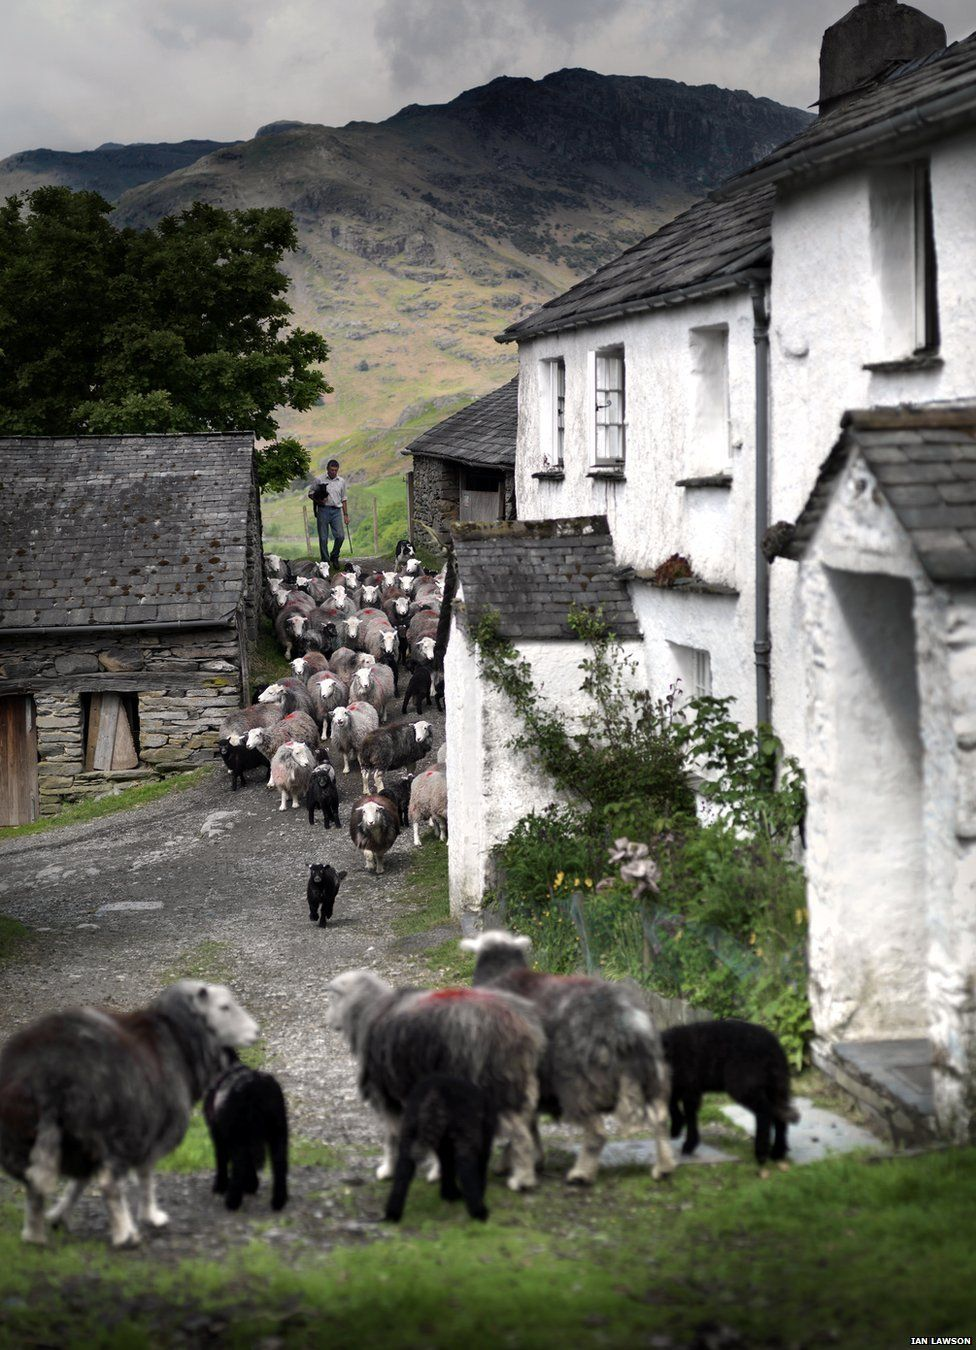 Rigopiano hotel avalanche first funerals as search goes on bbc news - Bbc News Photographs Celebrate Lake District Rare Breed Sheep